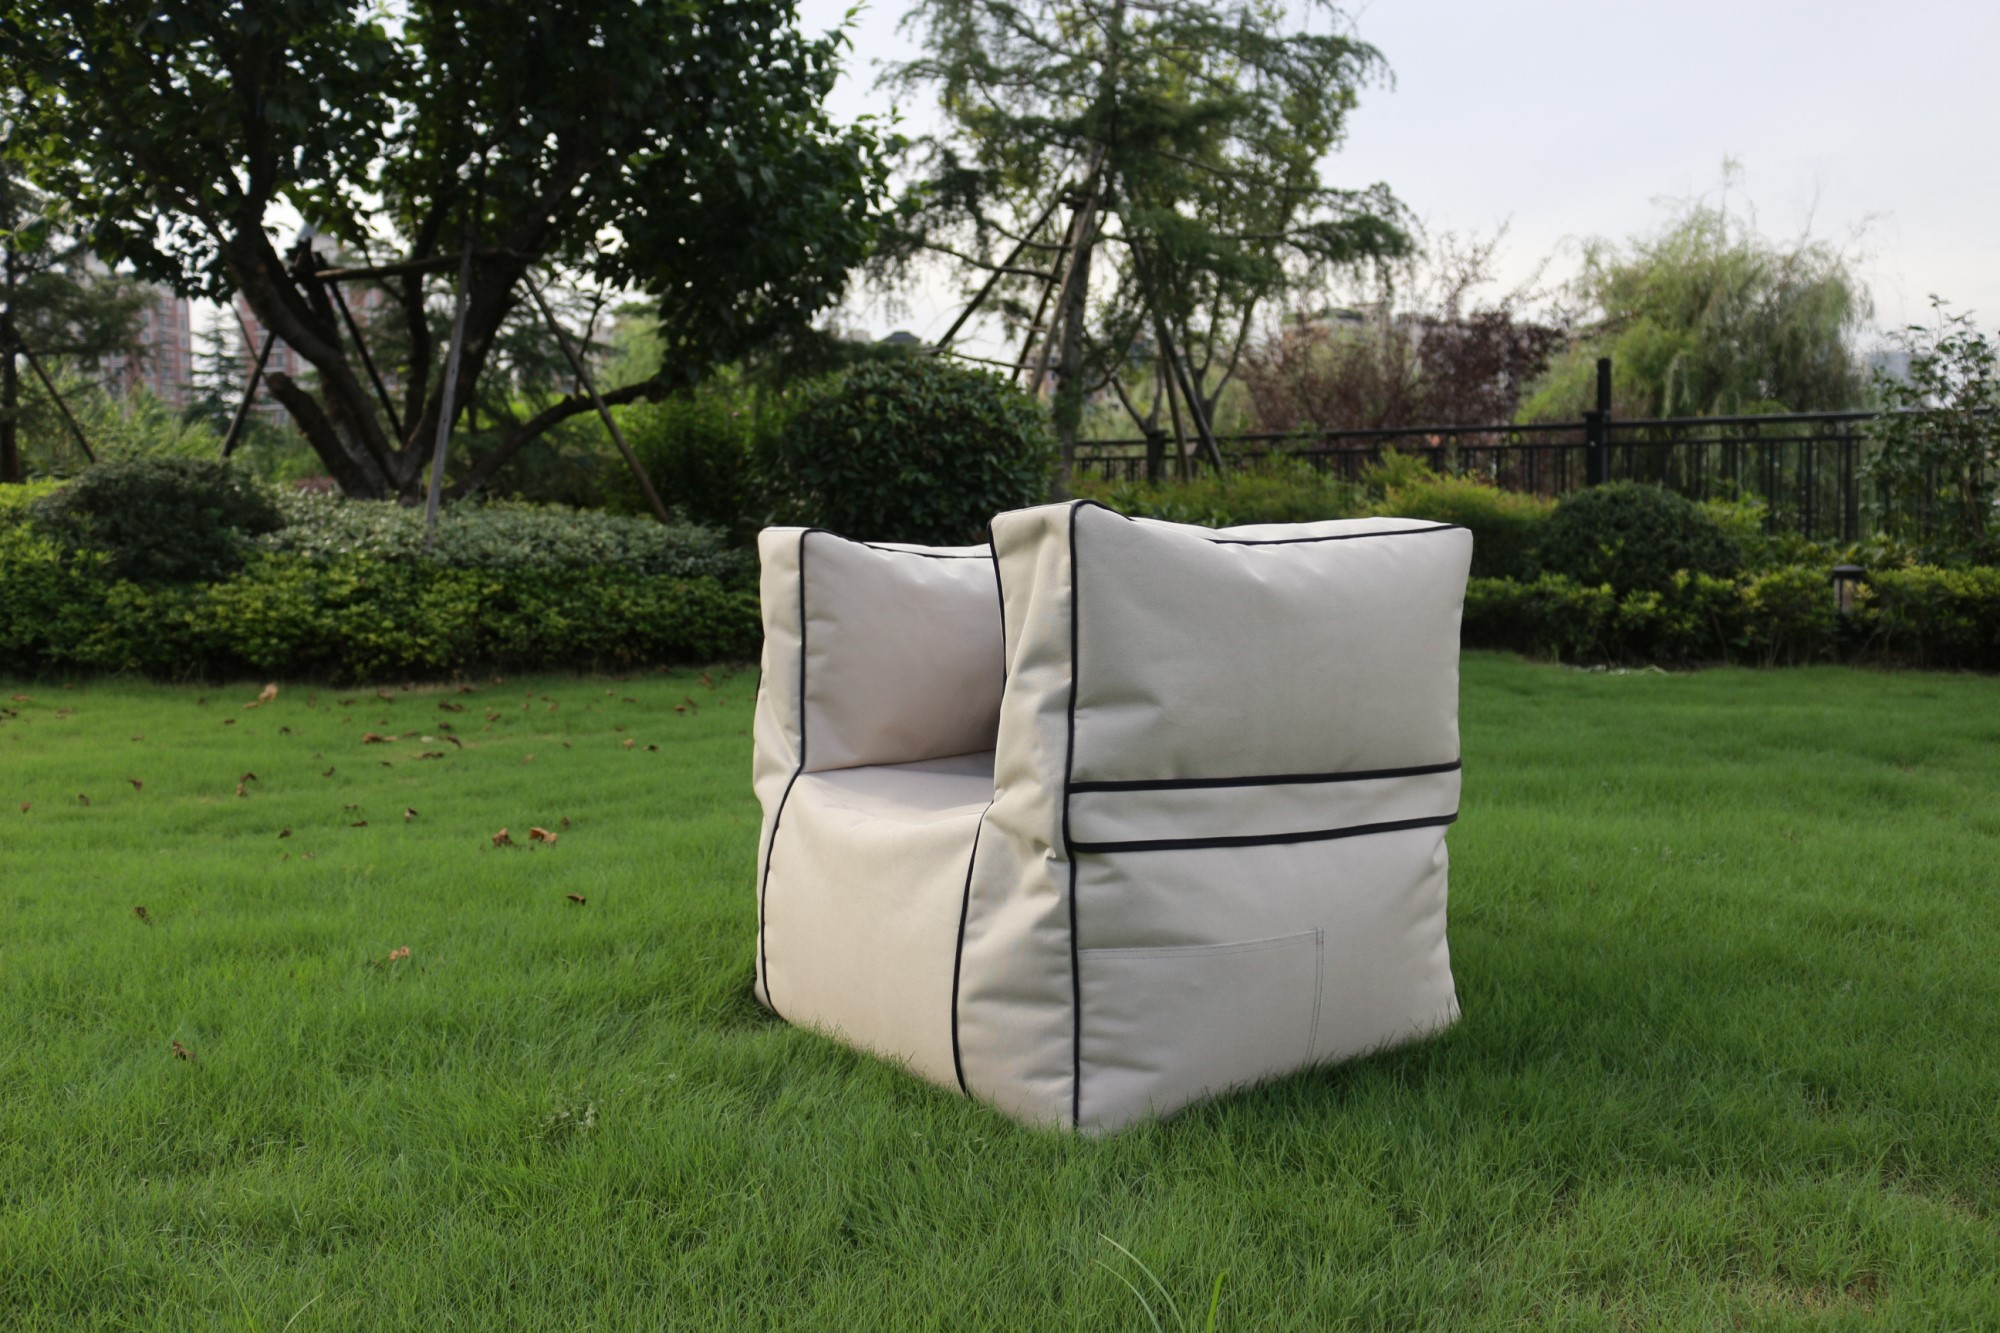 Soft adult armed chair outdoor bean bag sofa